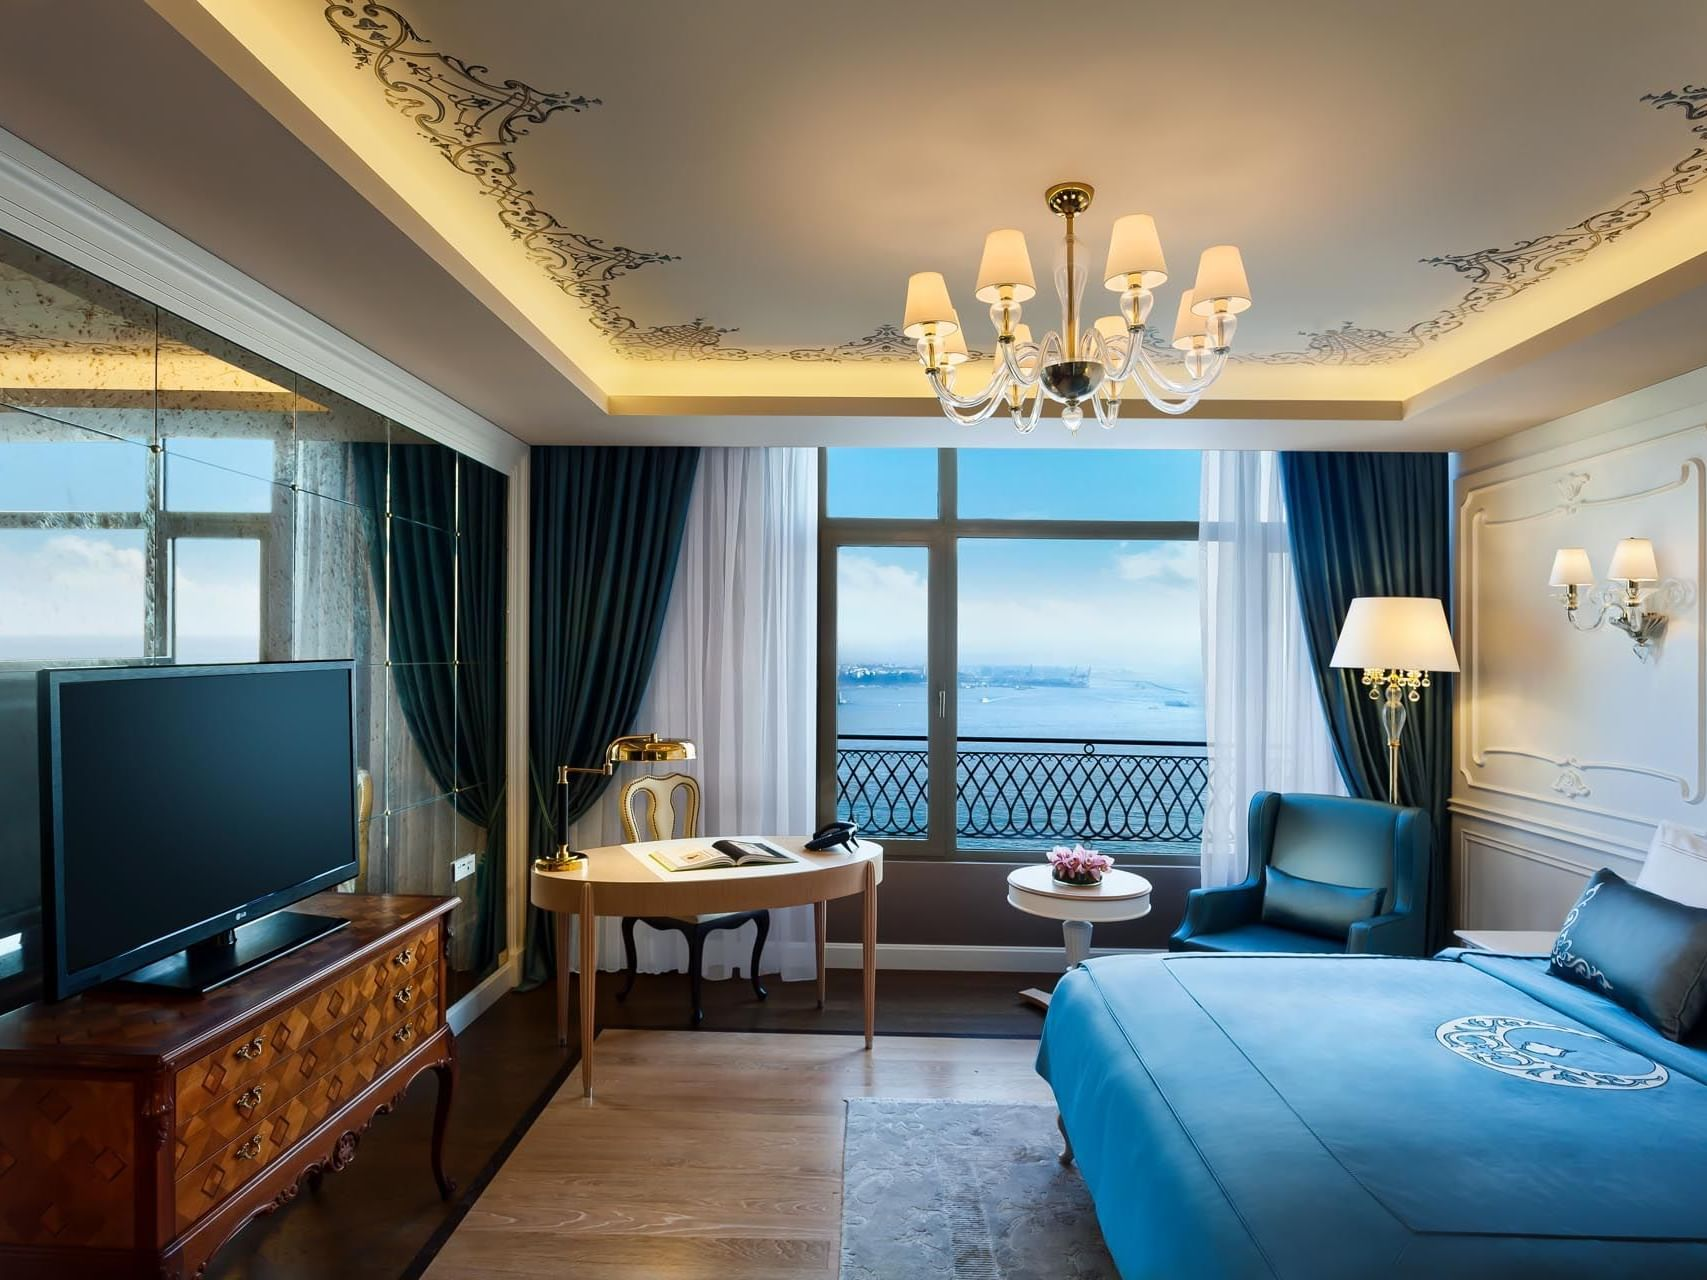 Executive Room with one bed at CVK Park Bosphorus Hotel